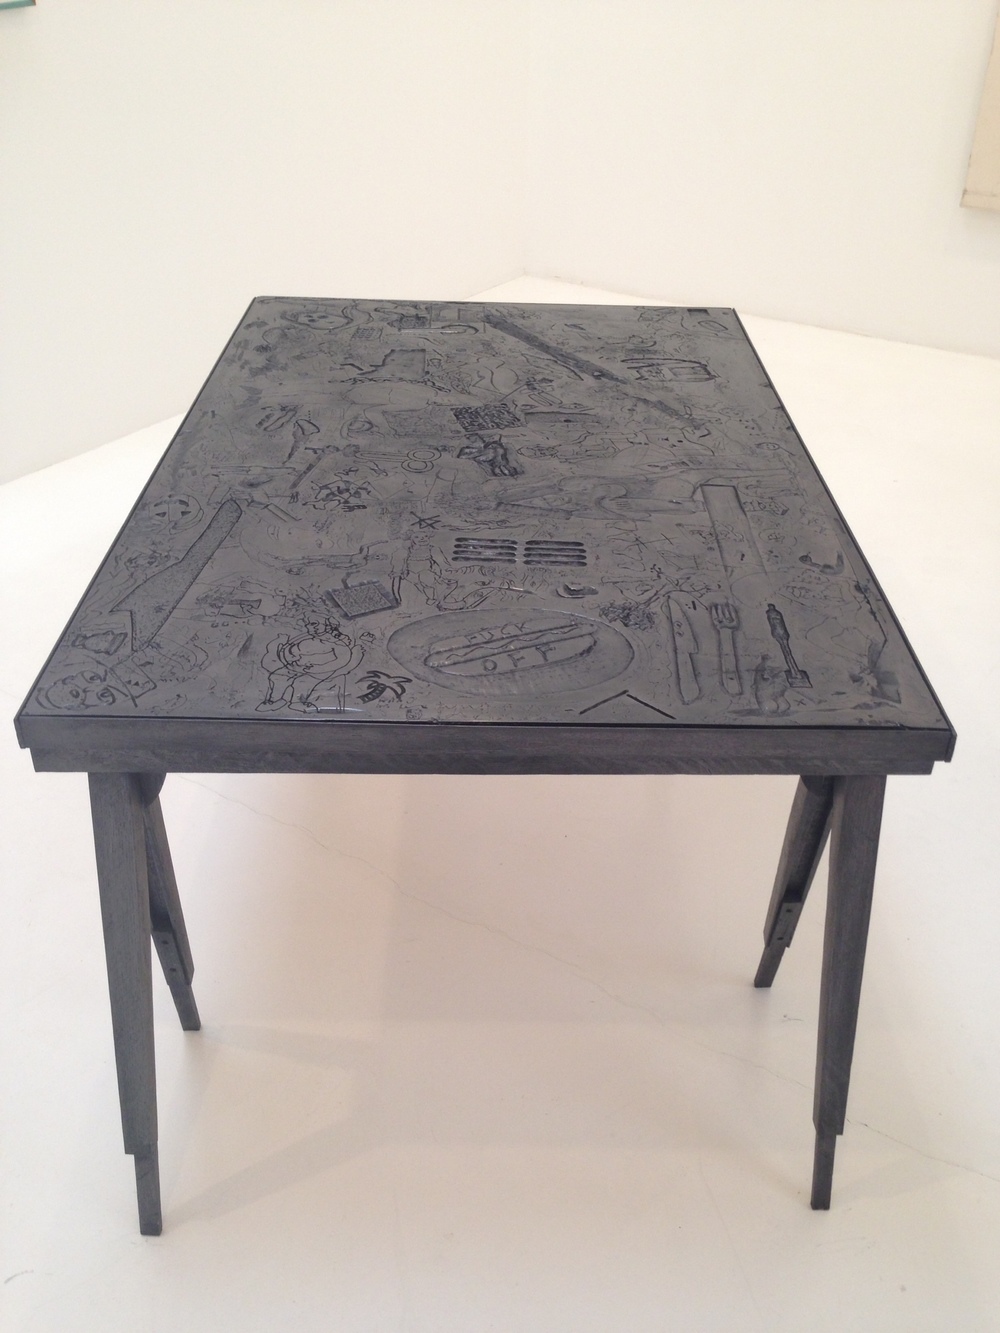 Lukas Geronimas's carved table